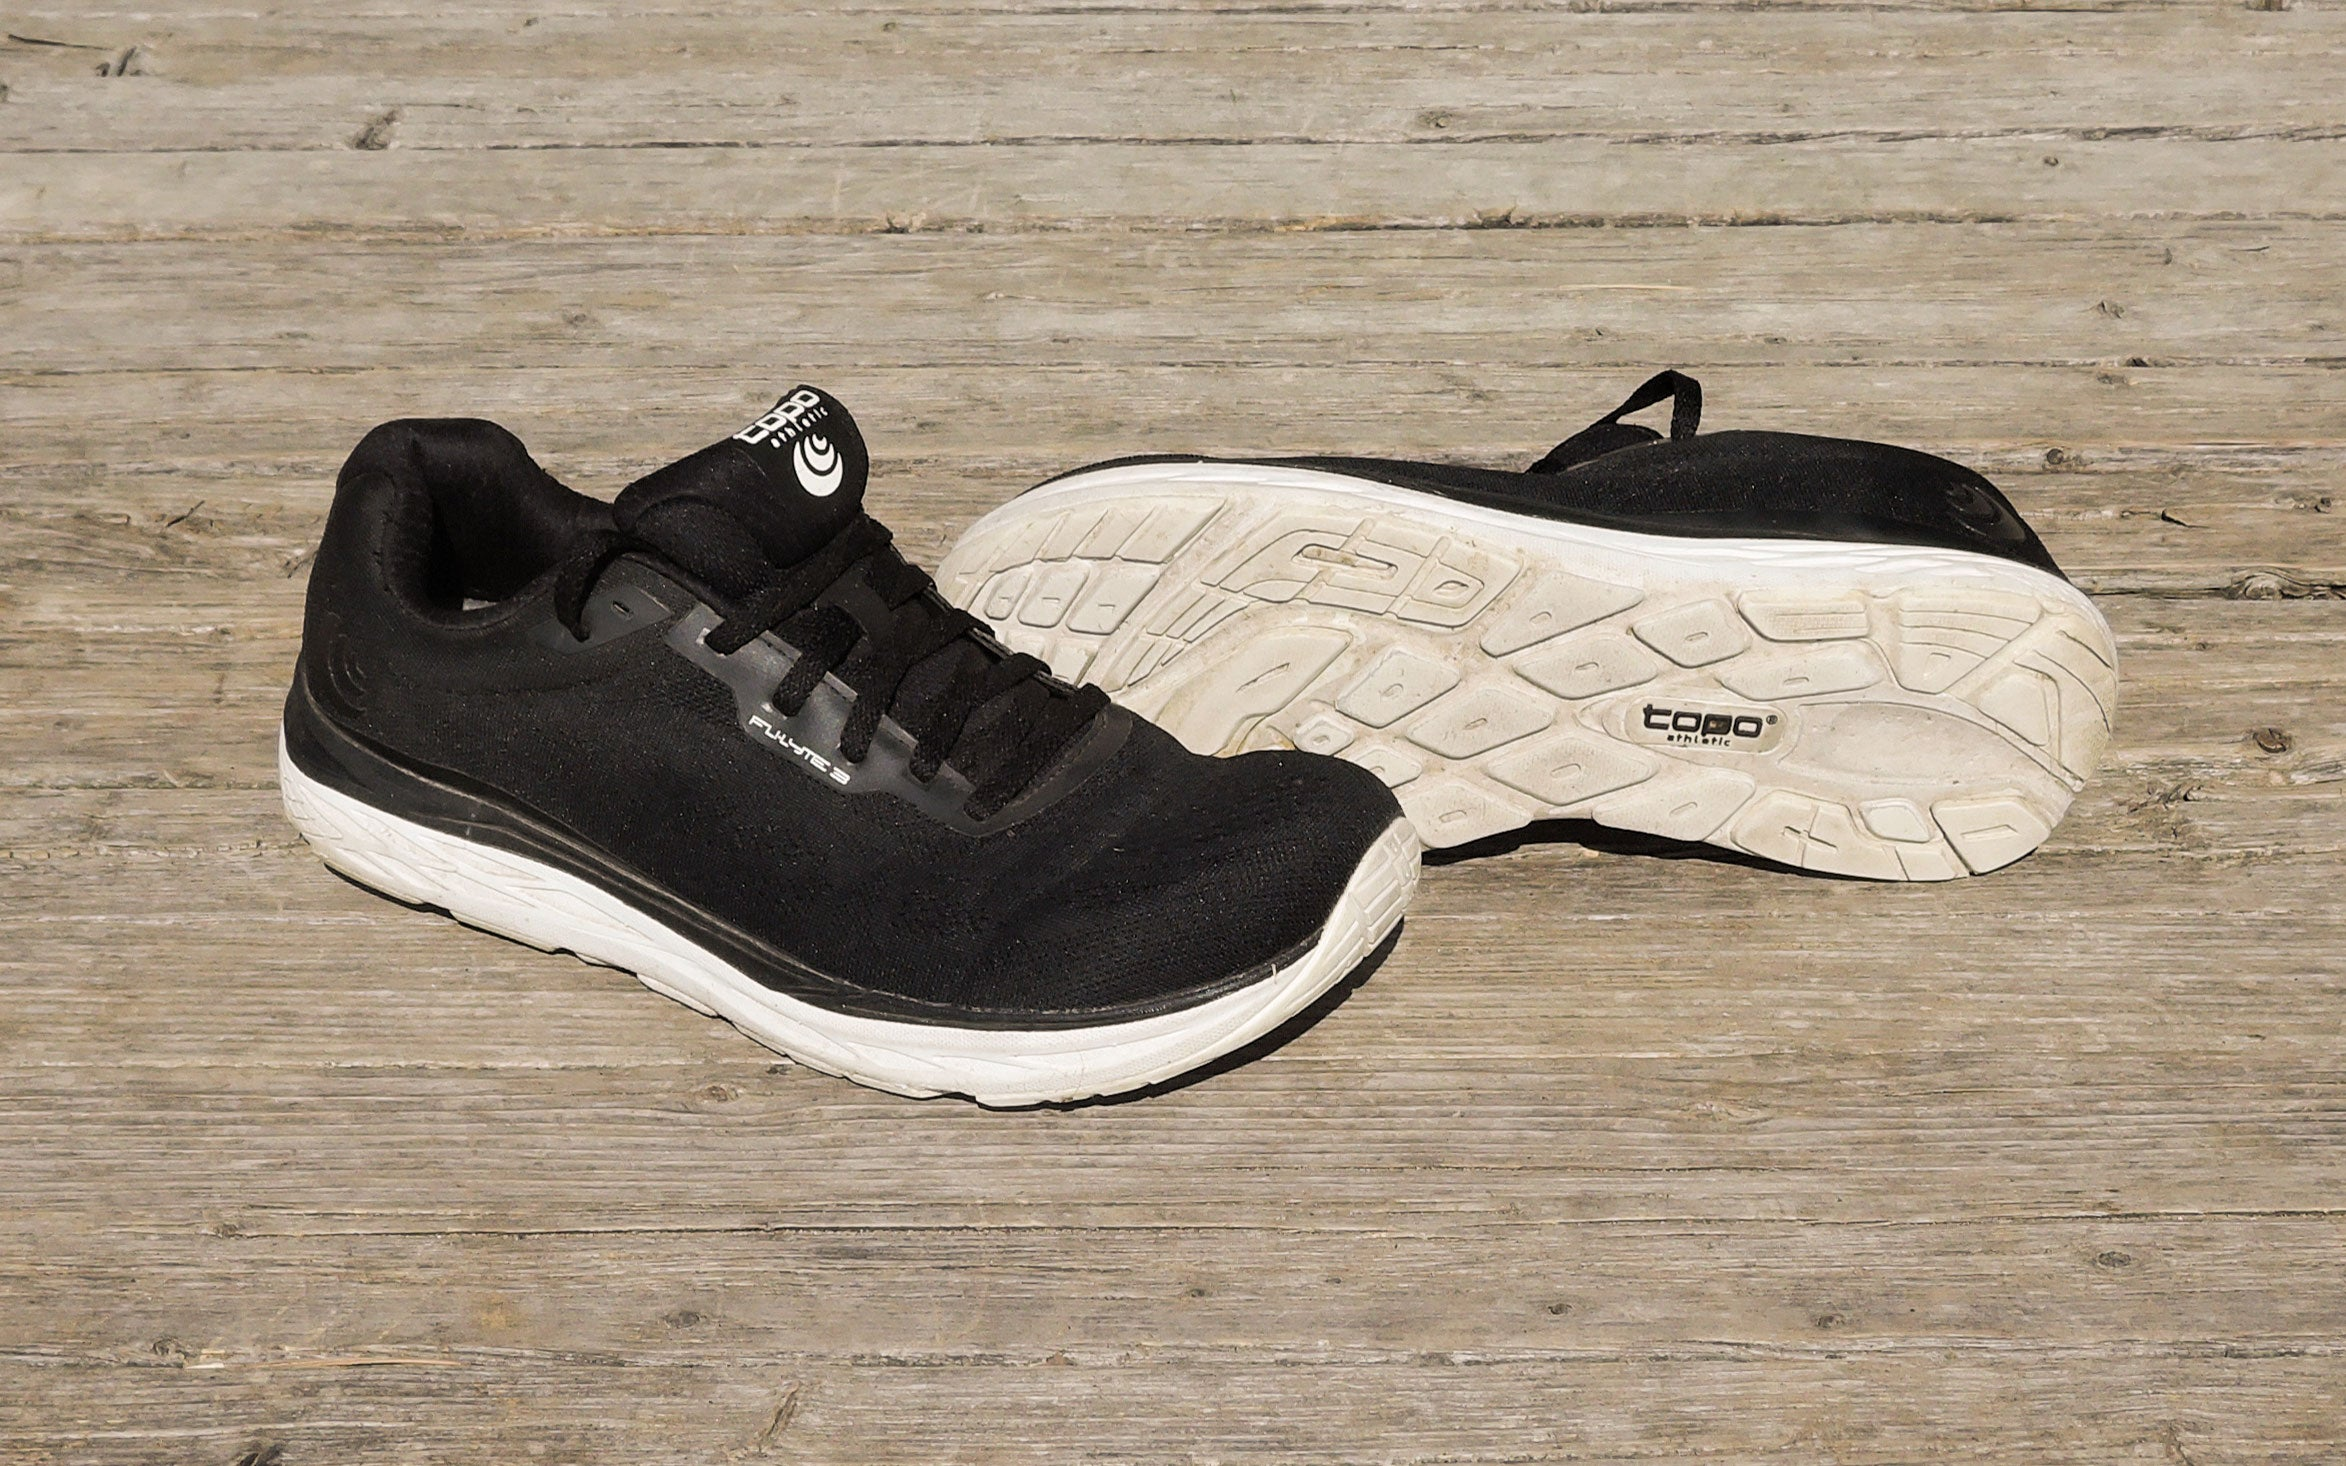 TOPO fil-lyte 3 trail running shoes